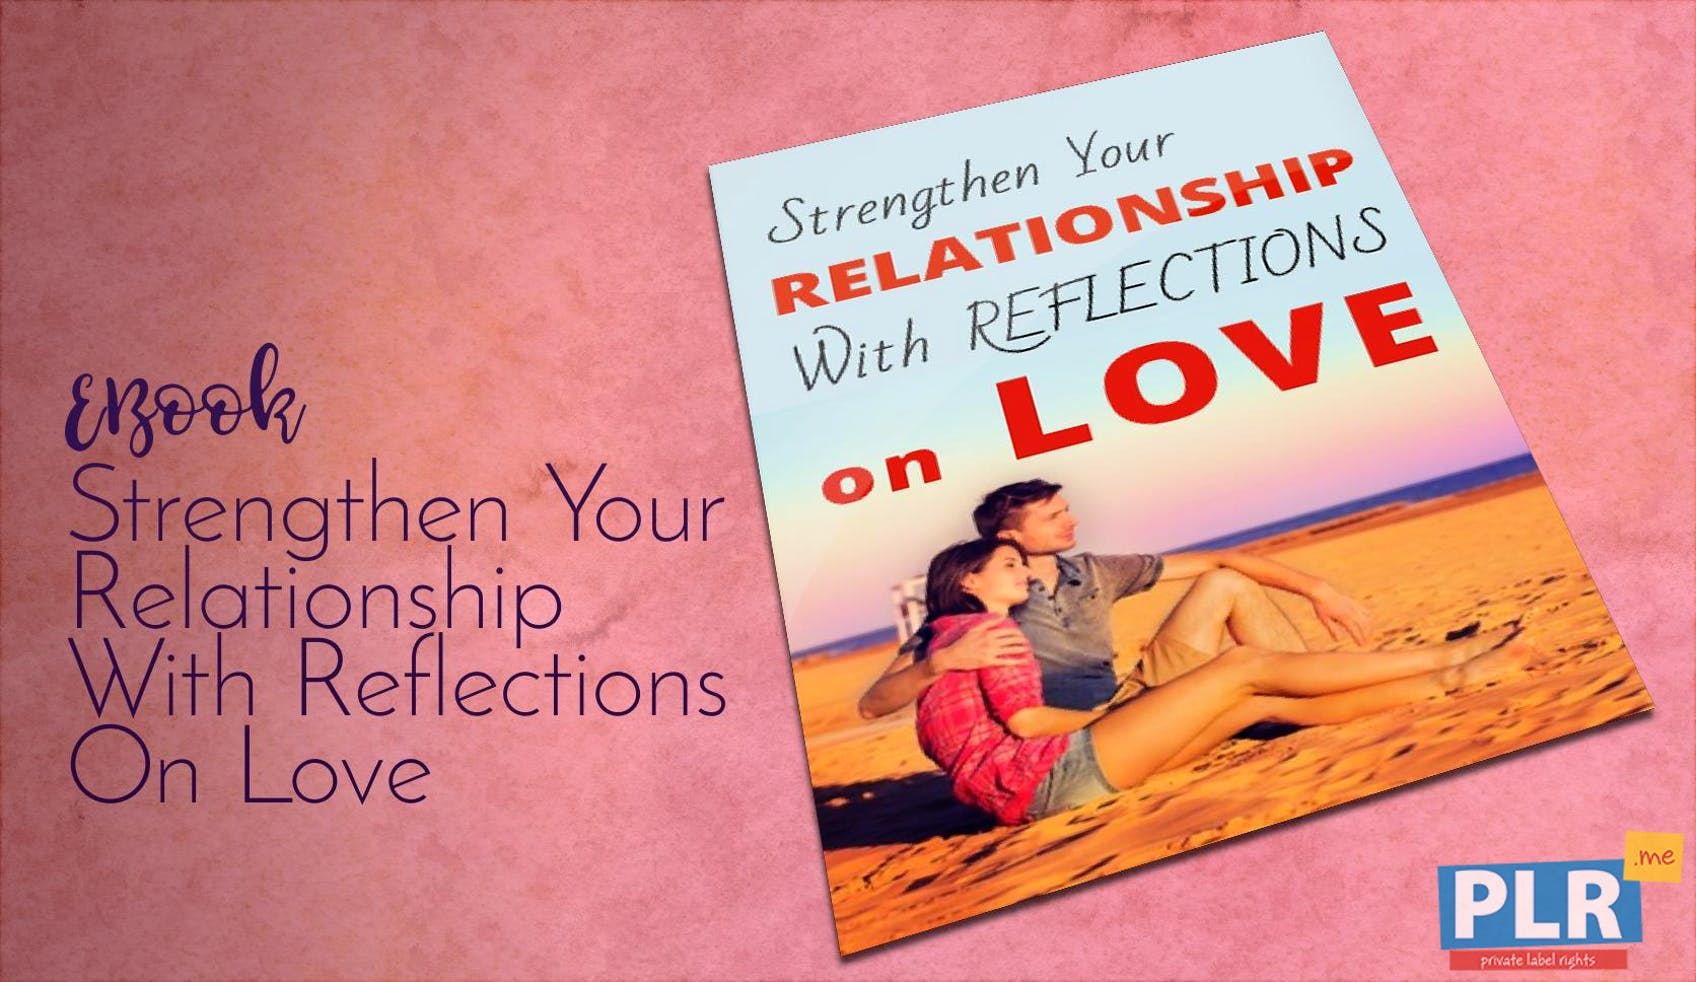 Strengthen Your Relationship With Reflections On Love